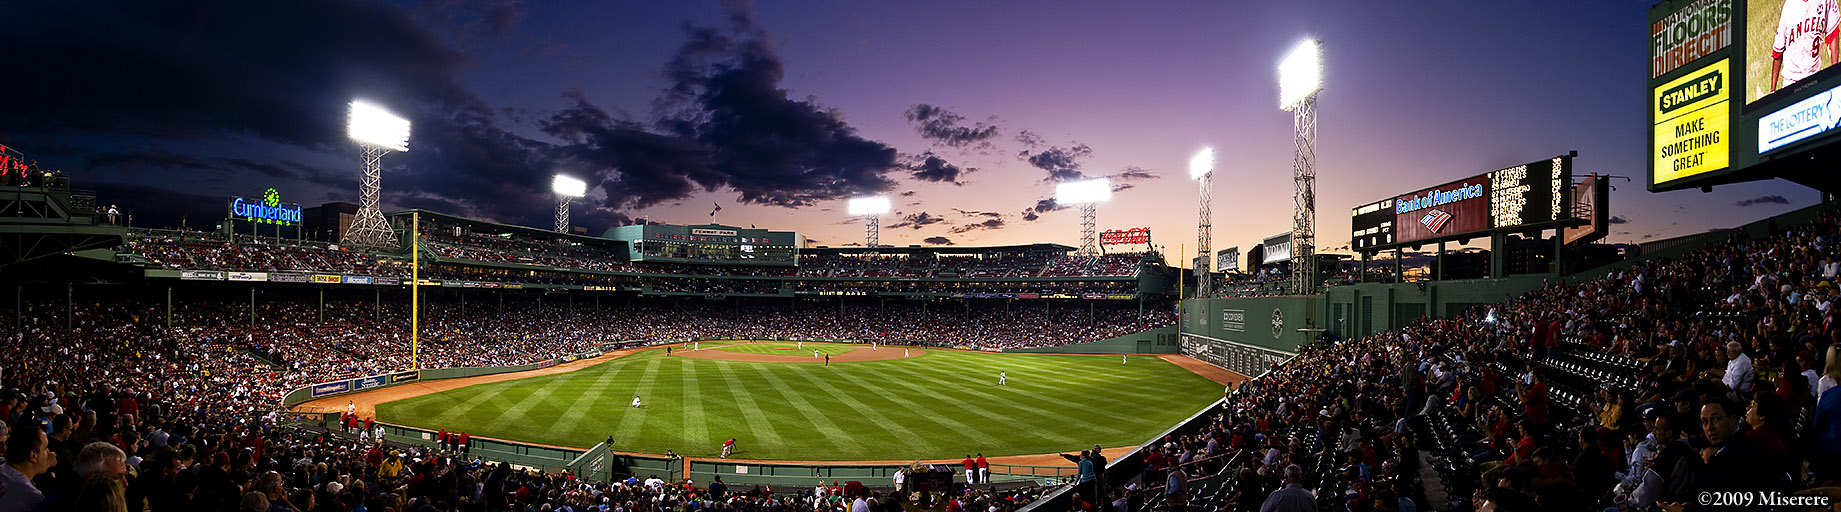 Miserere - Fenway Park panorama